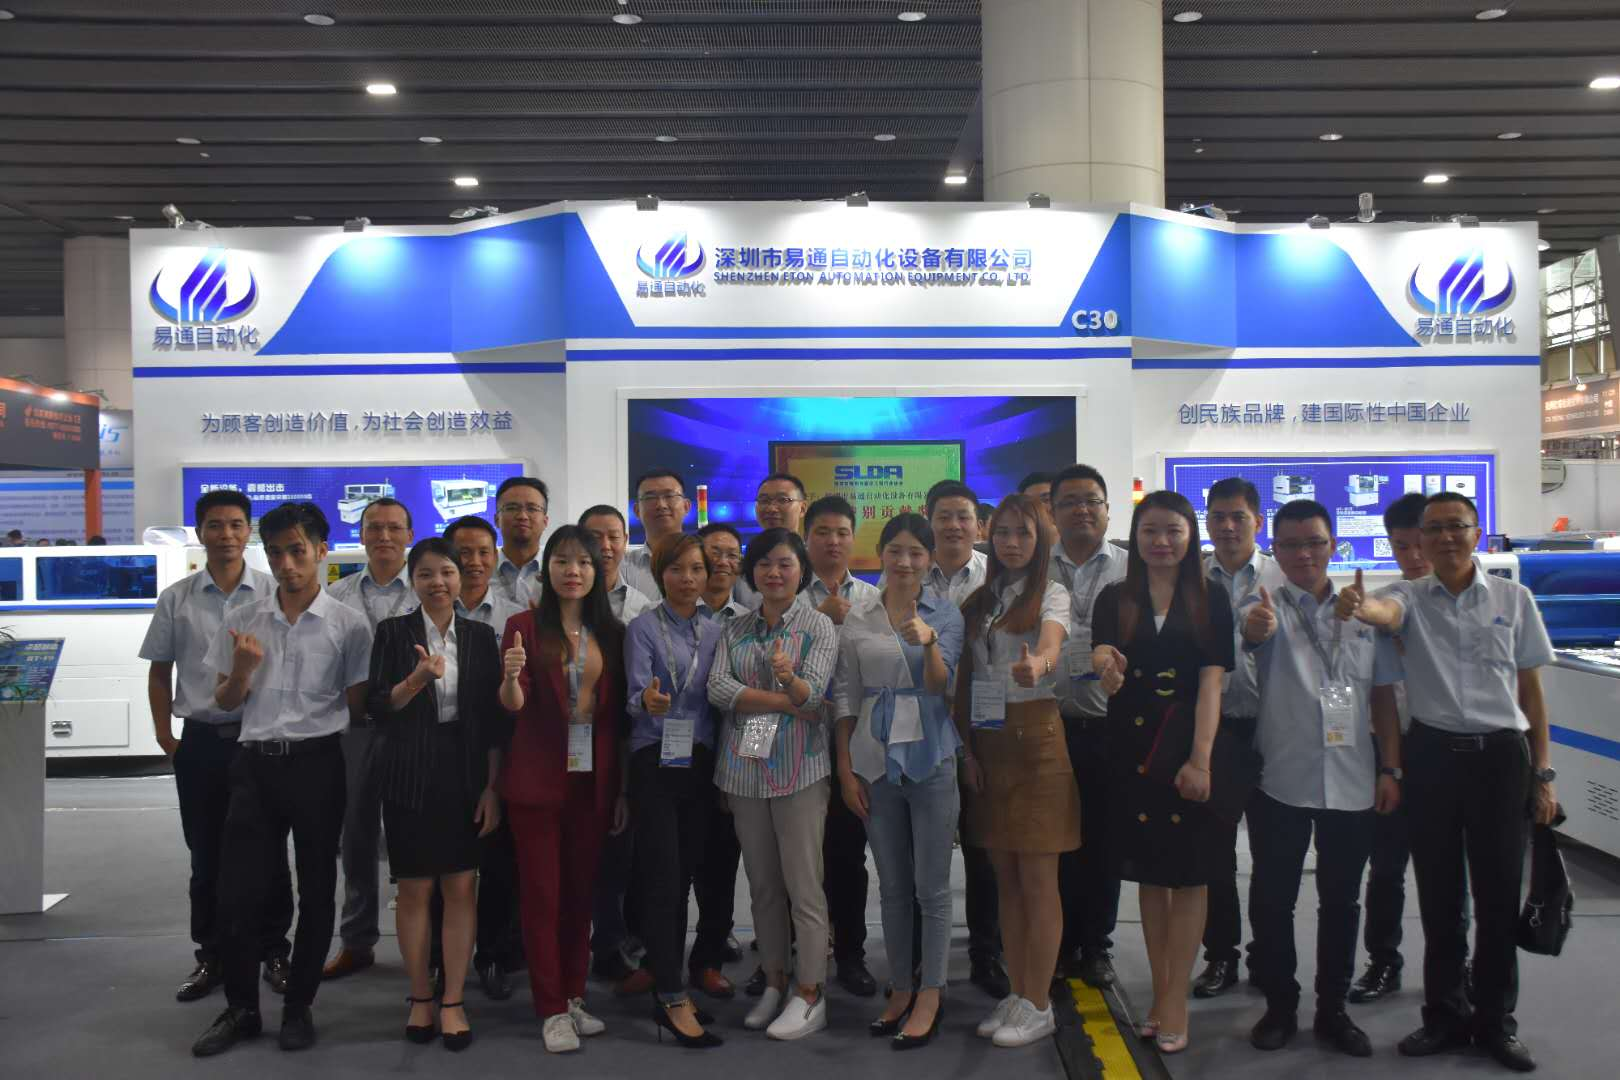 2019 GUANGZHOU LIGHTING AND ELECTRIC EXHIBITION